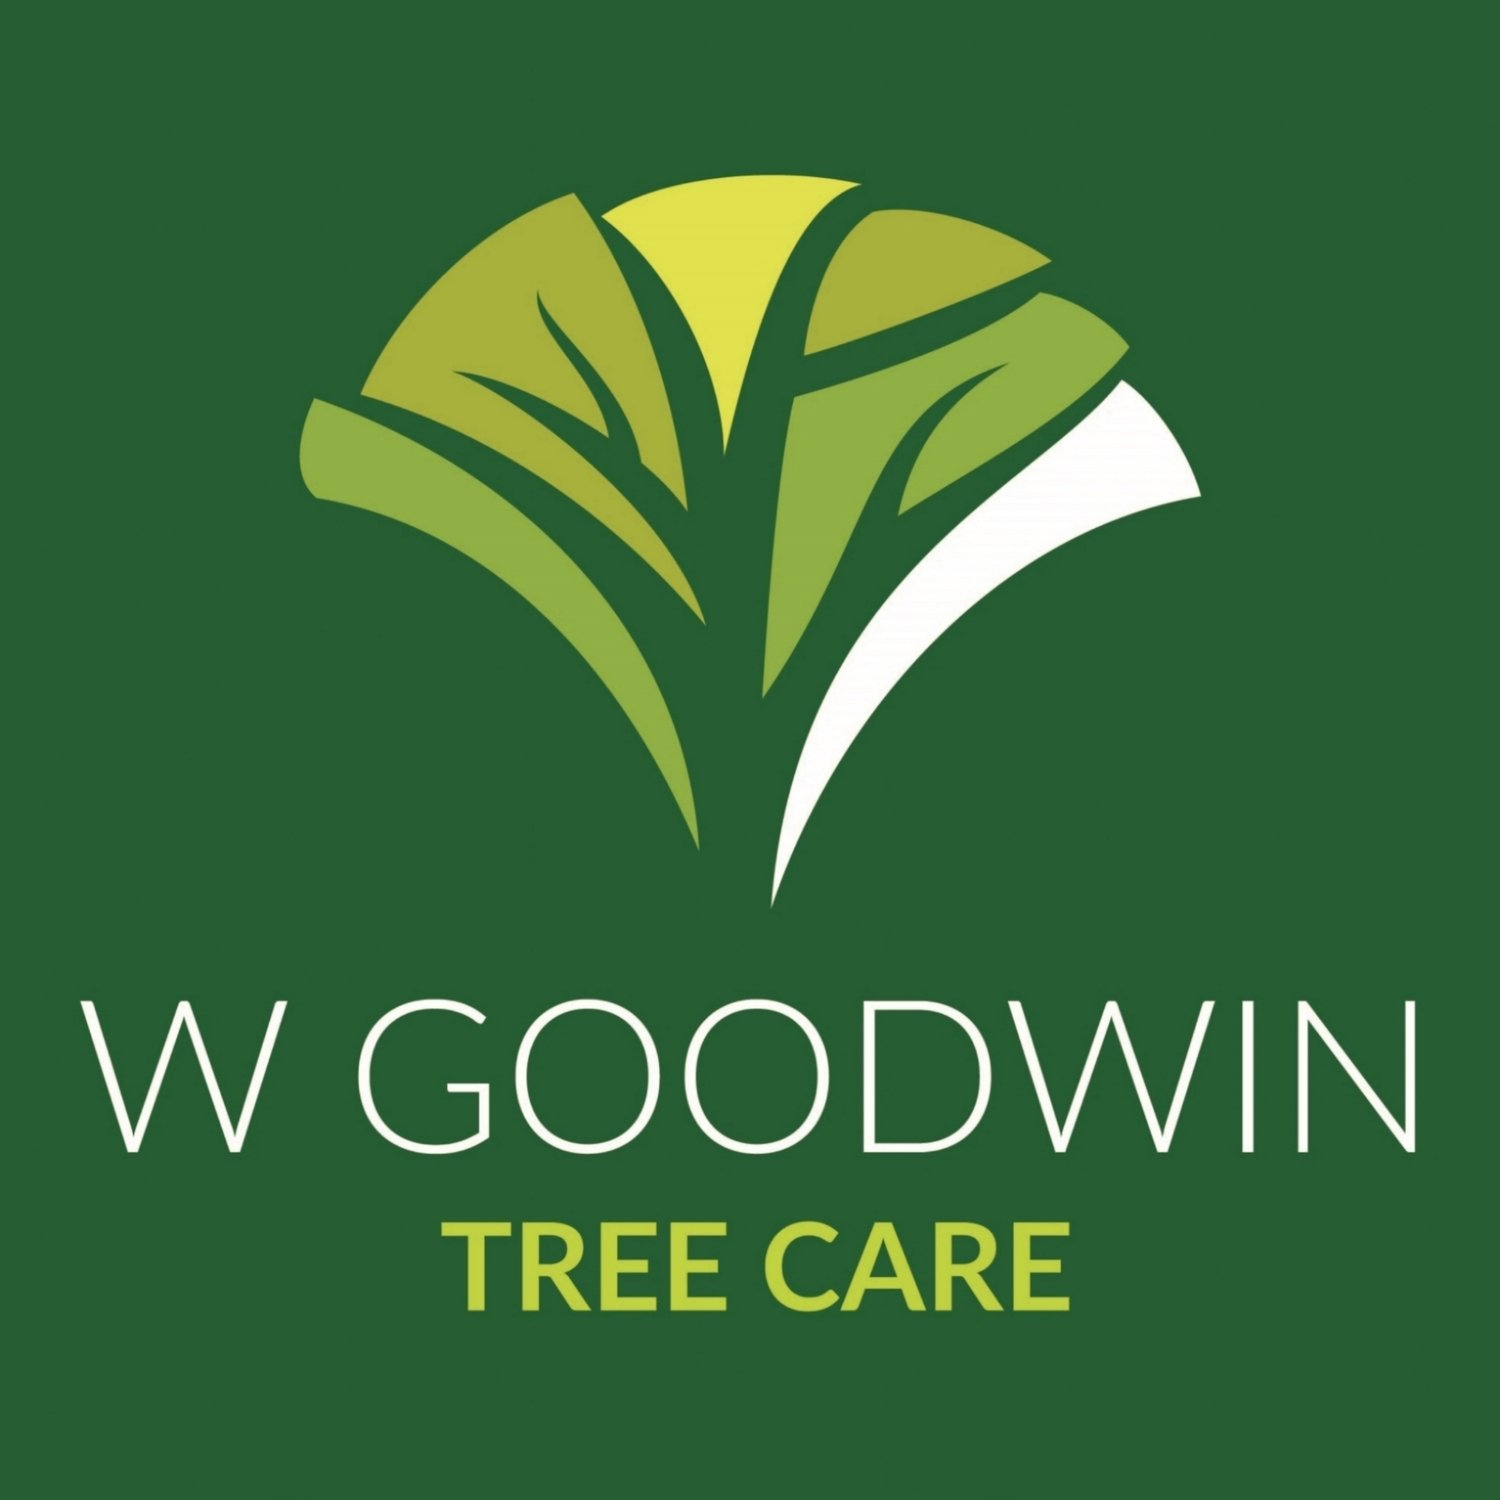 W Goodwin Tree Care